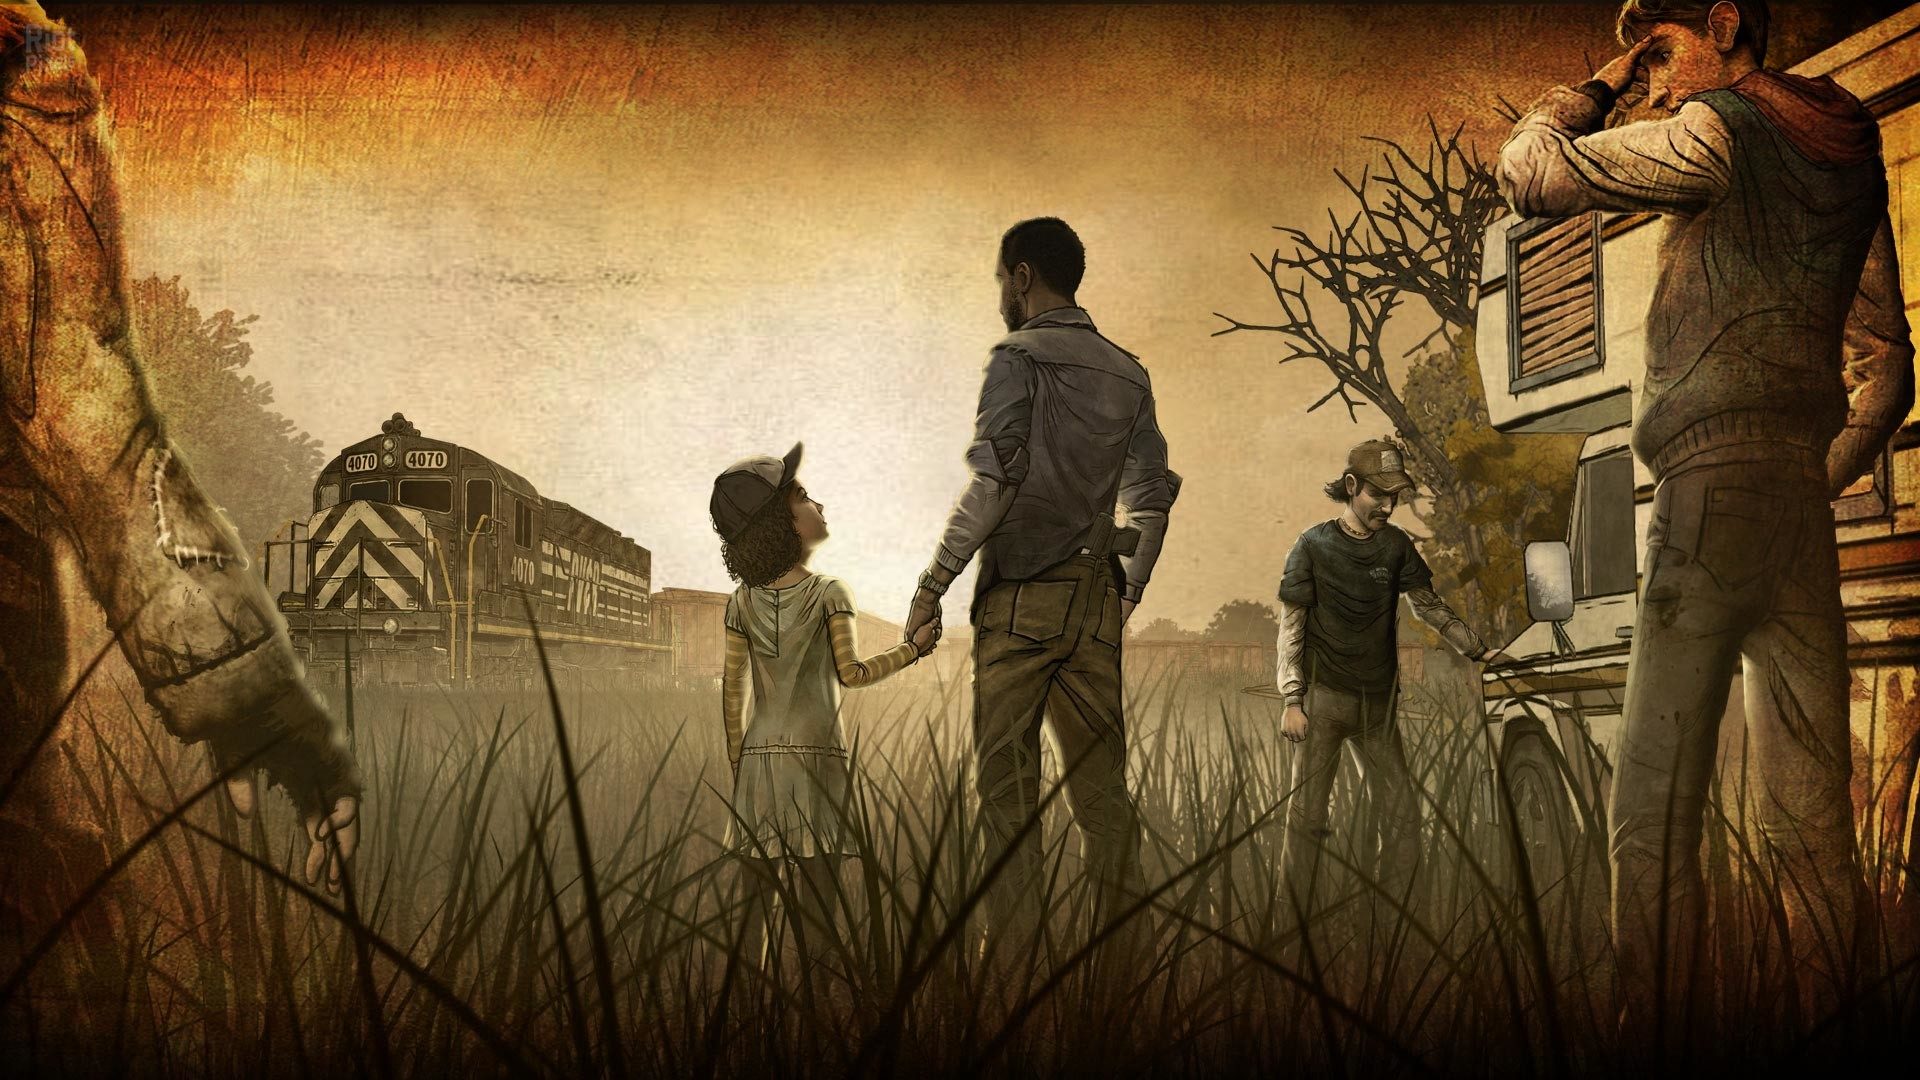 The Walking Dead Game Wallpaper Wallpapertag